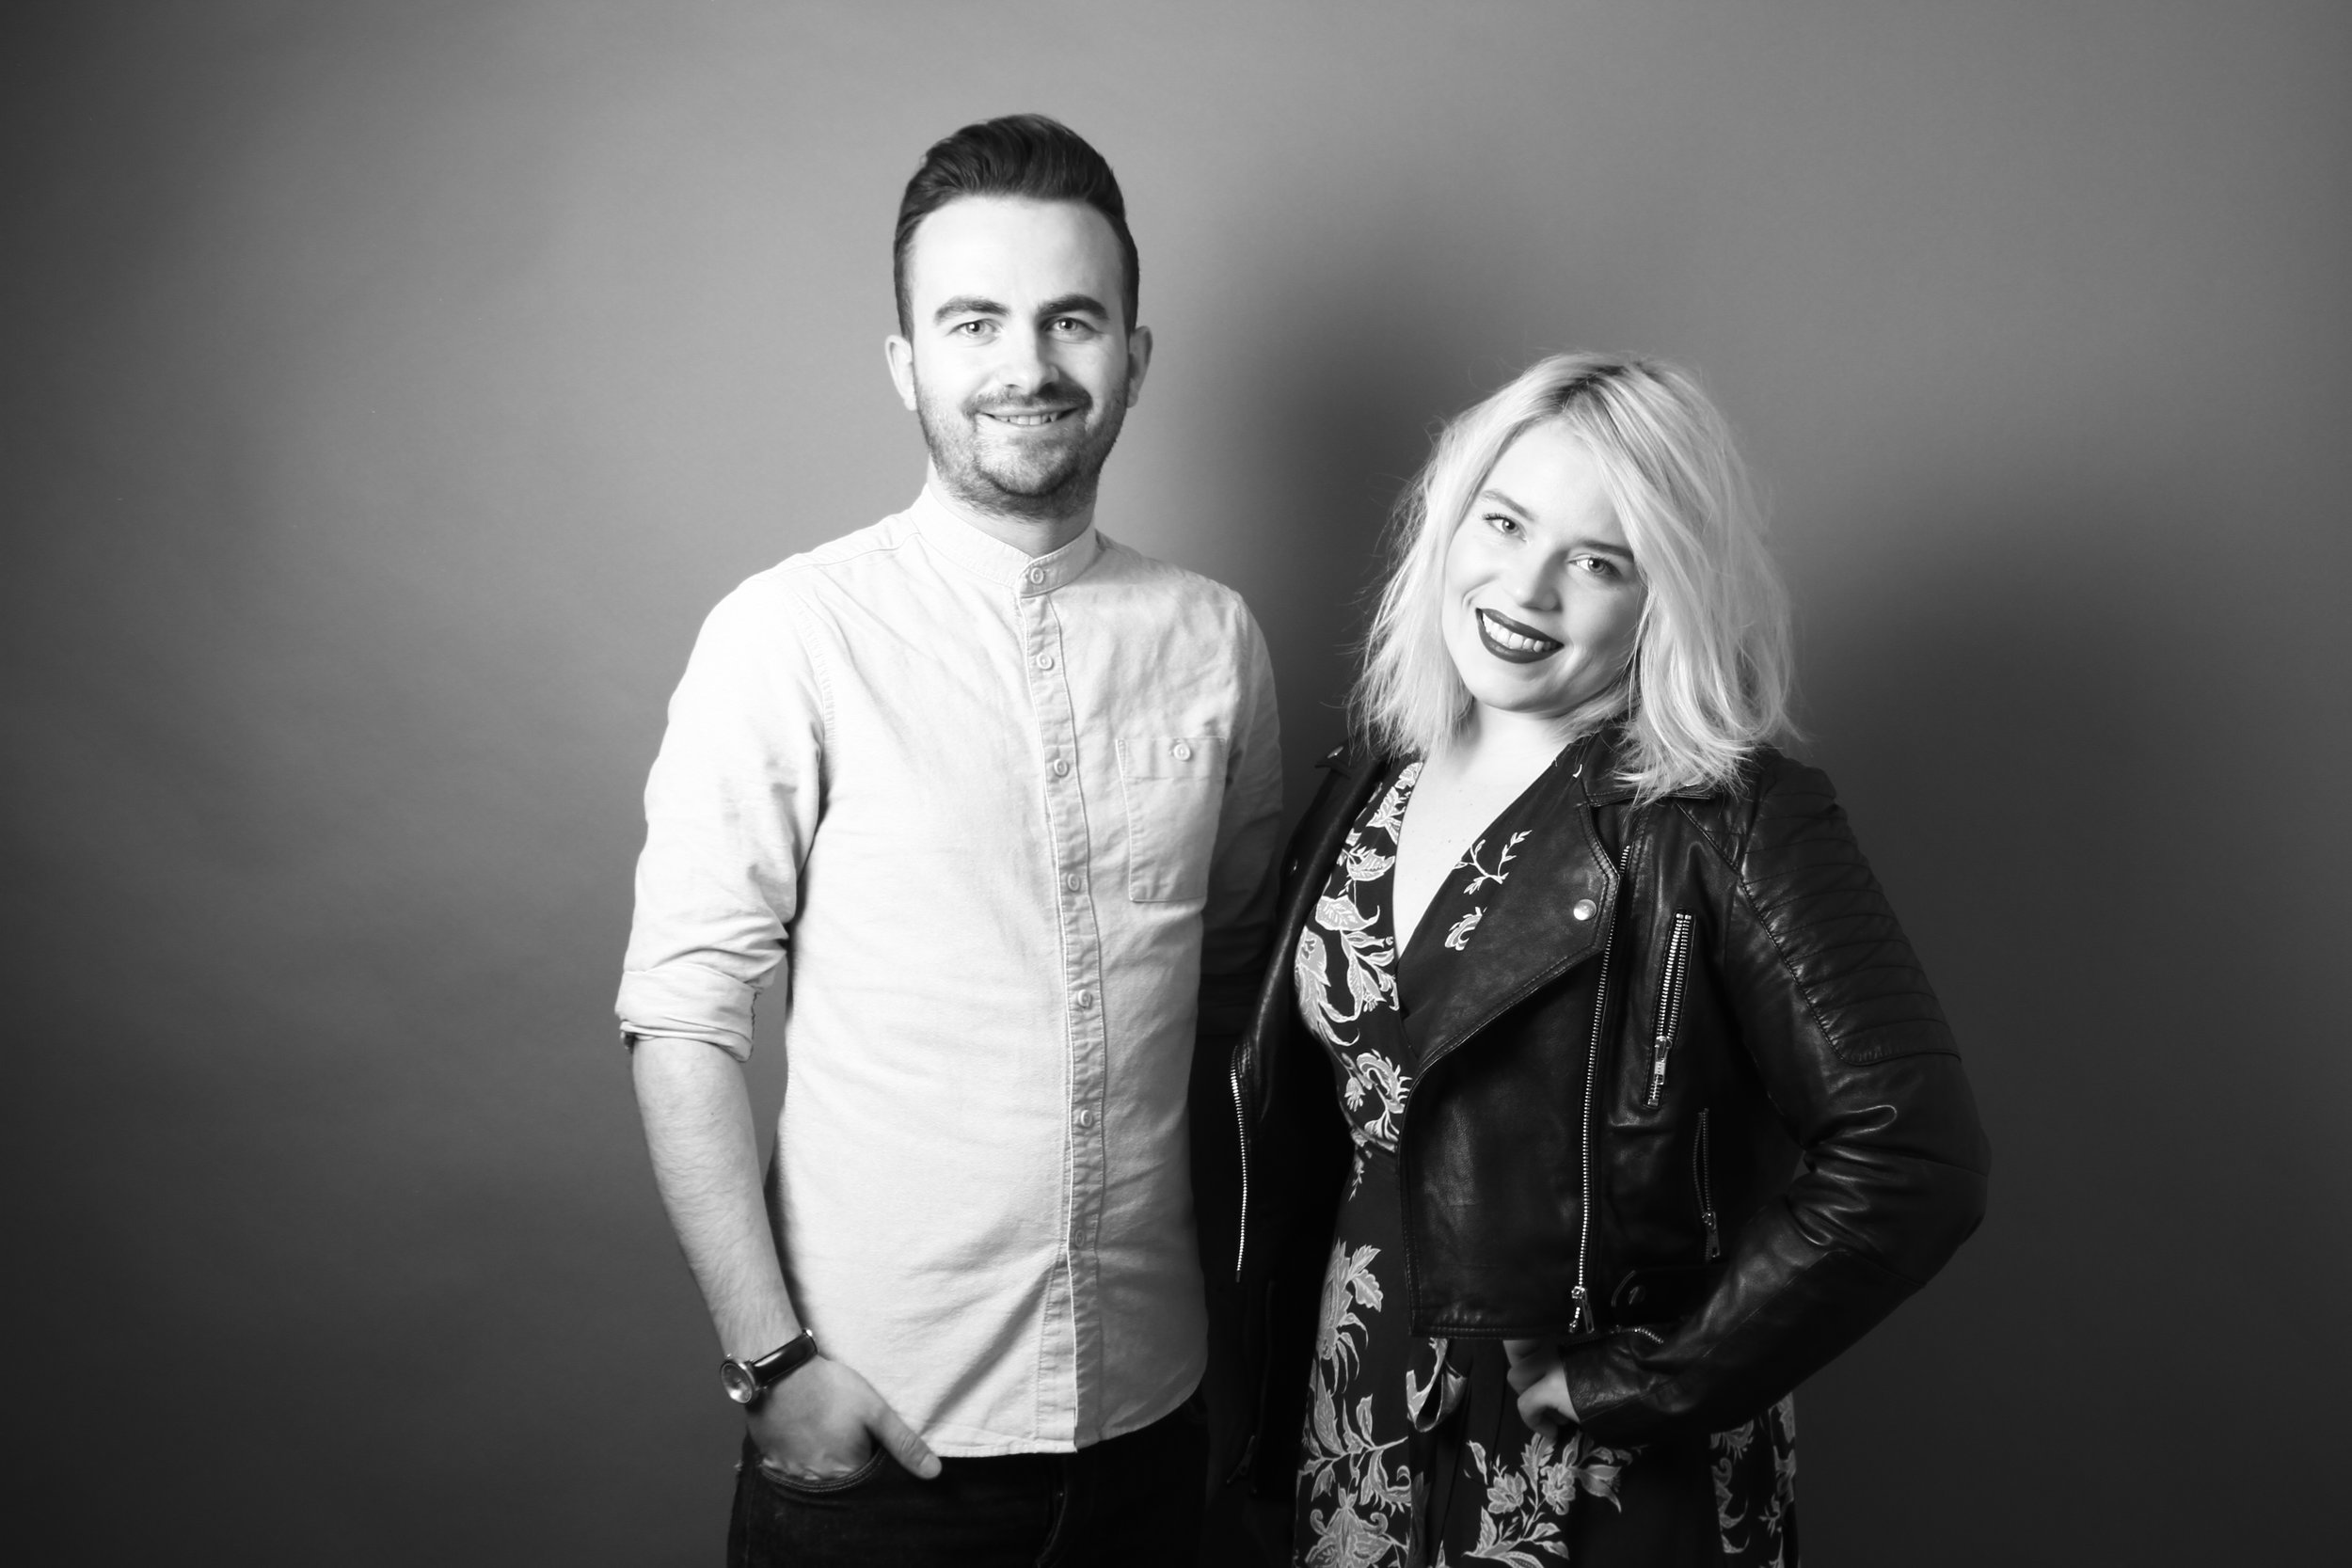 KOG founders Gordon Smith (L) and Krystin Arneson (R)